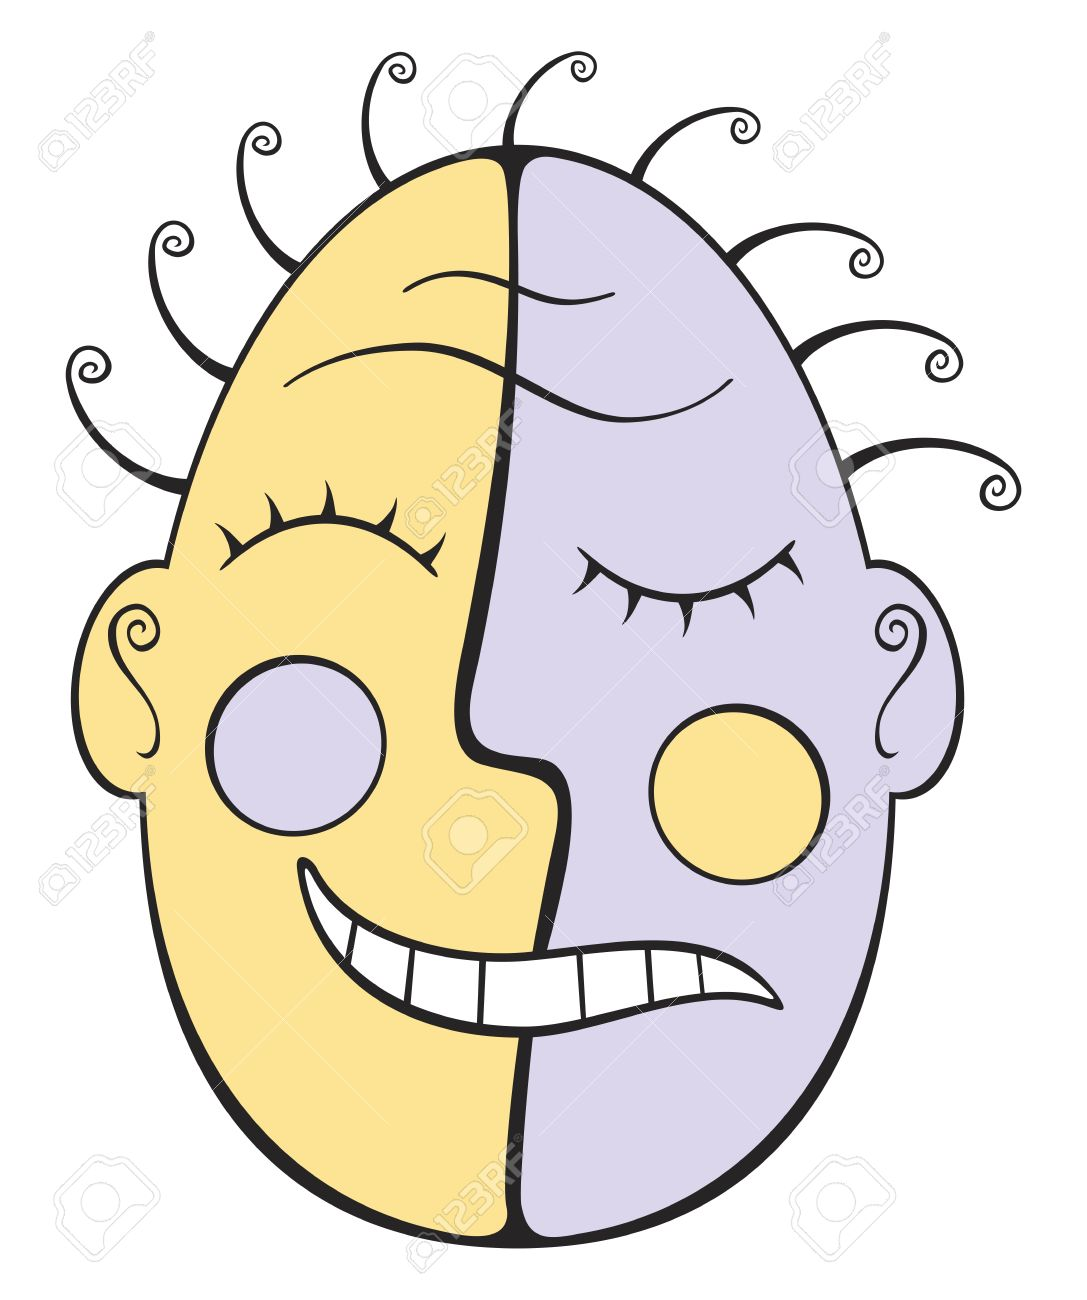 1087x1300 Tribal Mask With Sad And Happy Face Royalty Free Cliparts, Vectors